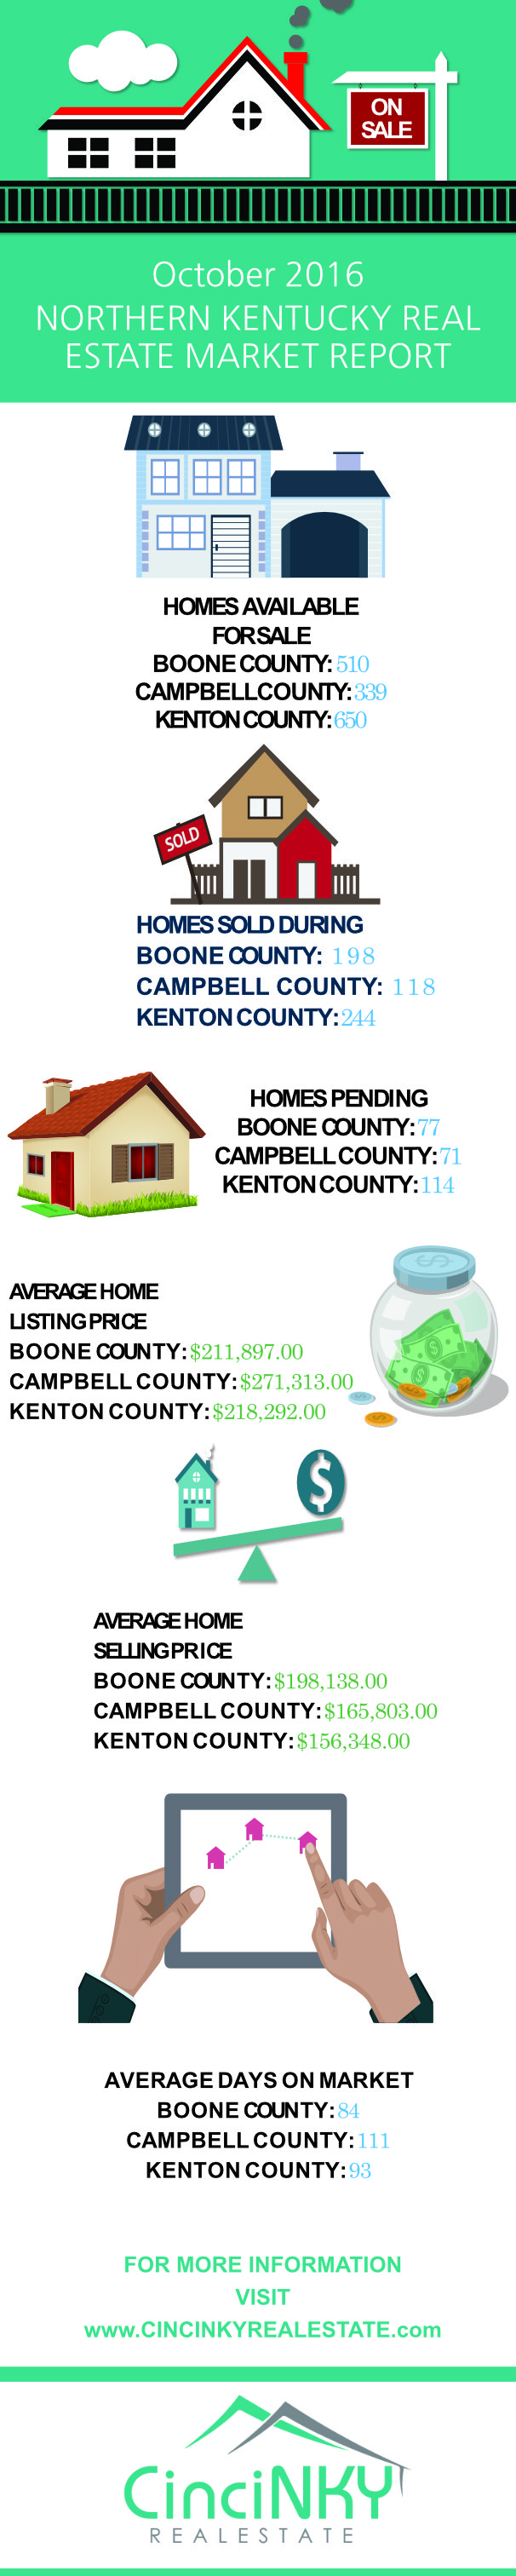 Northern Kentucky Real Estate Market Report Infographic